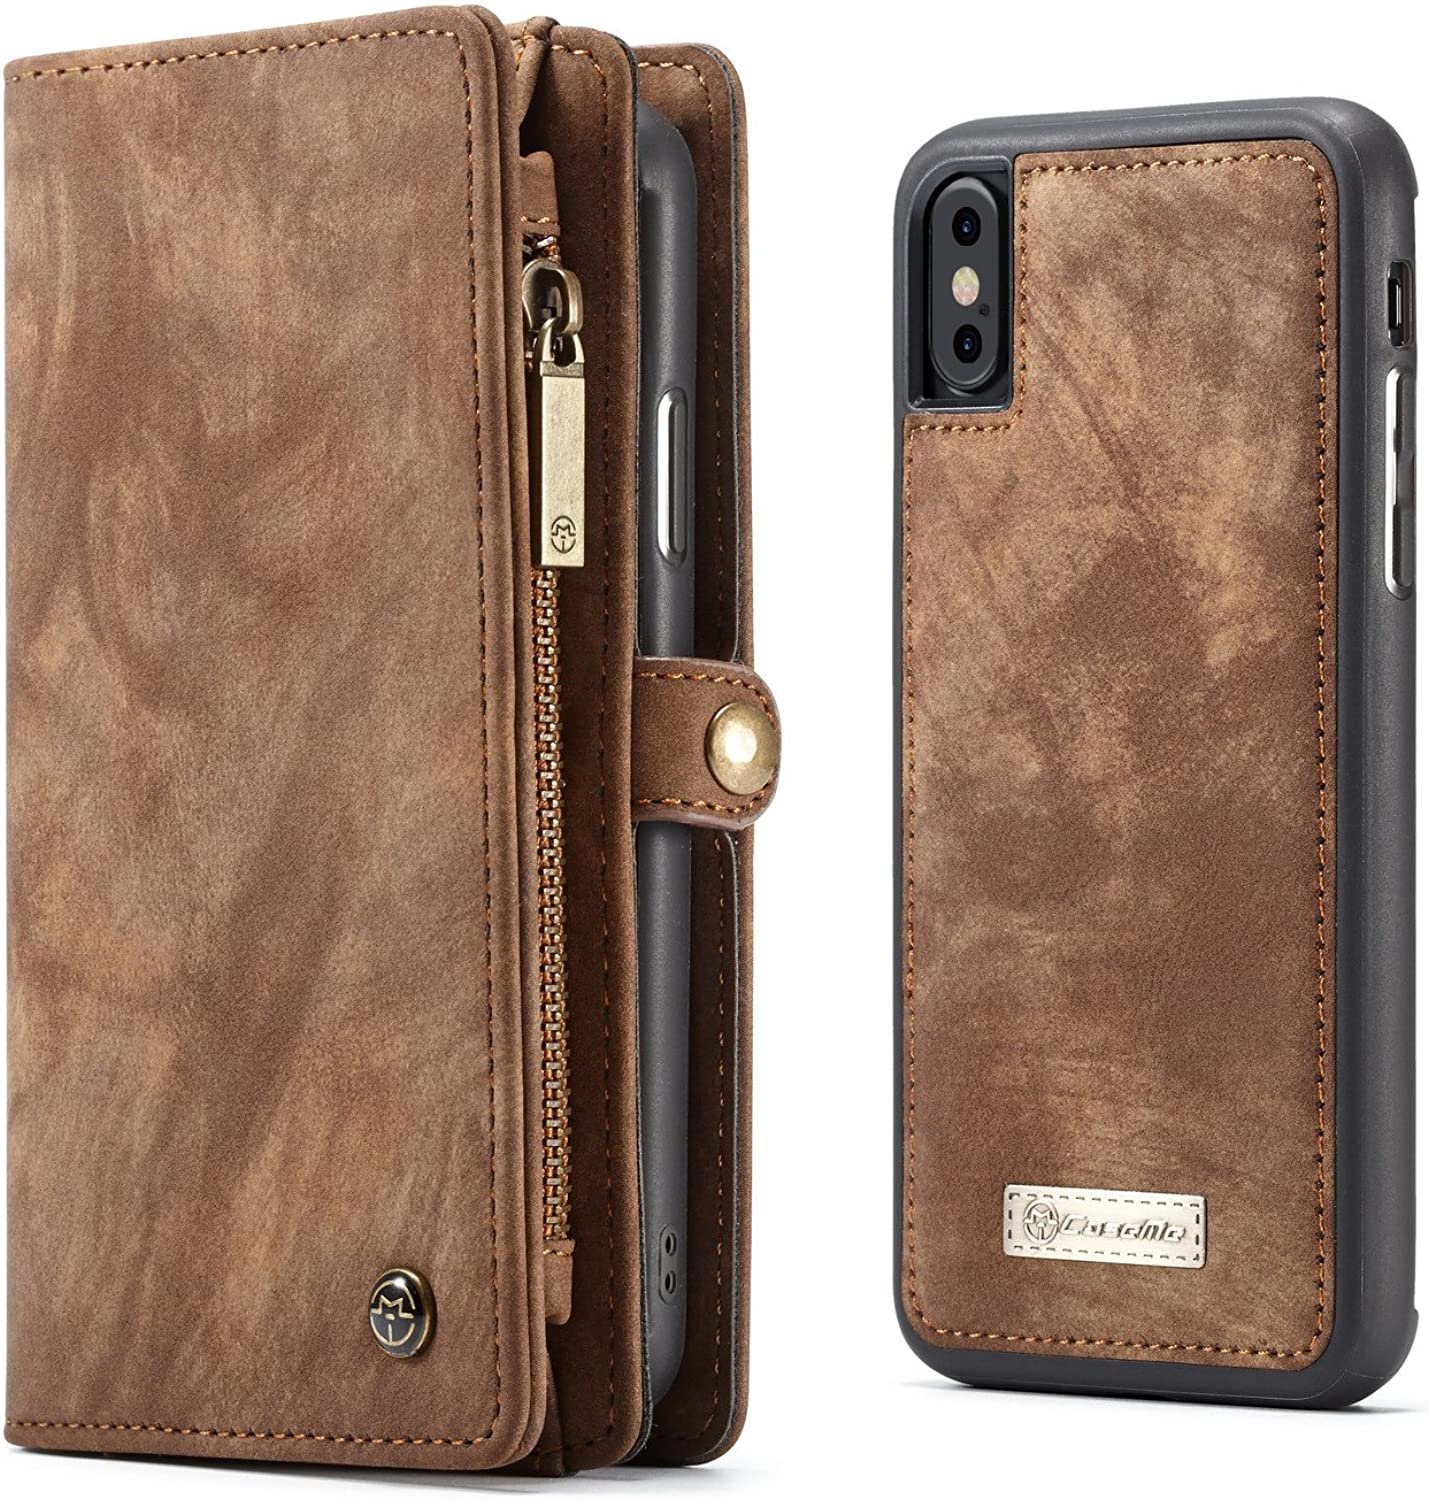 KONKY Caseme iPhone X Wallet Case, Magnetic Detachable Removable Phone Cover Pouch Folio Durable Leather Purse Flip Card Pockets Holder Bag Smooth ZipperBrown